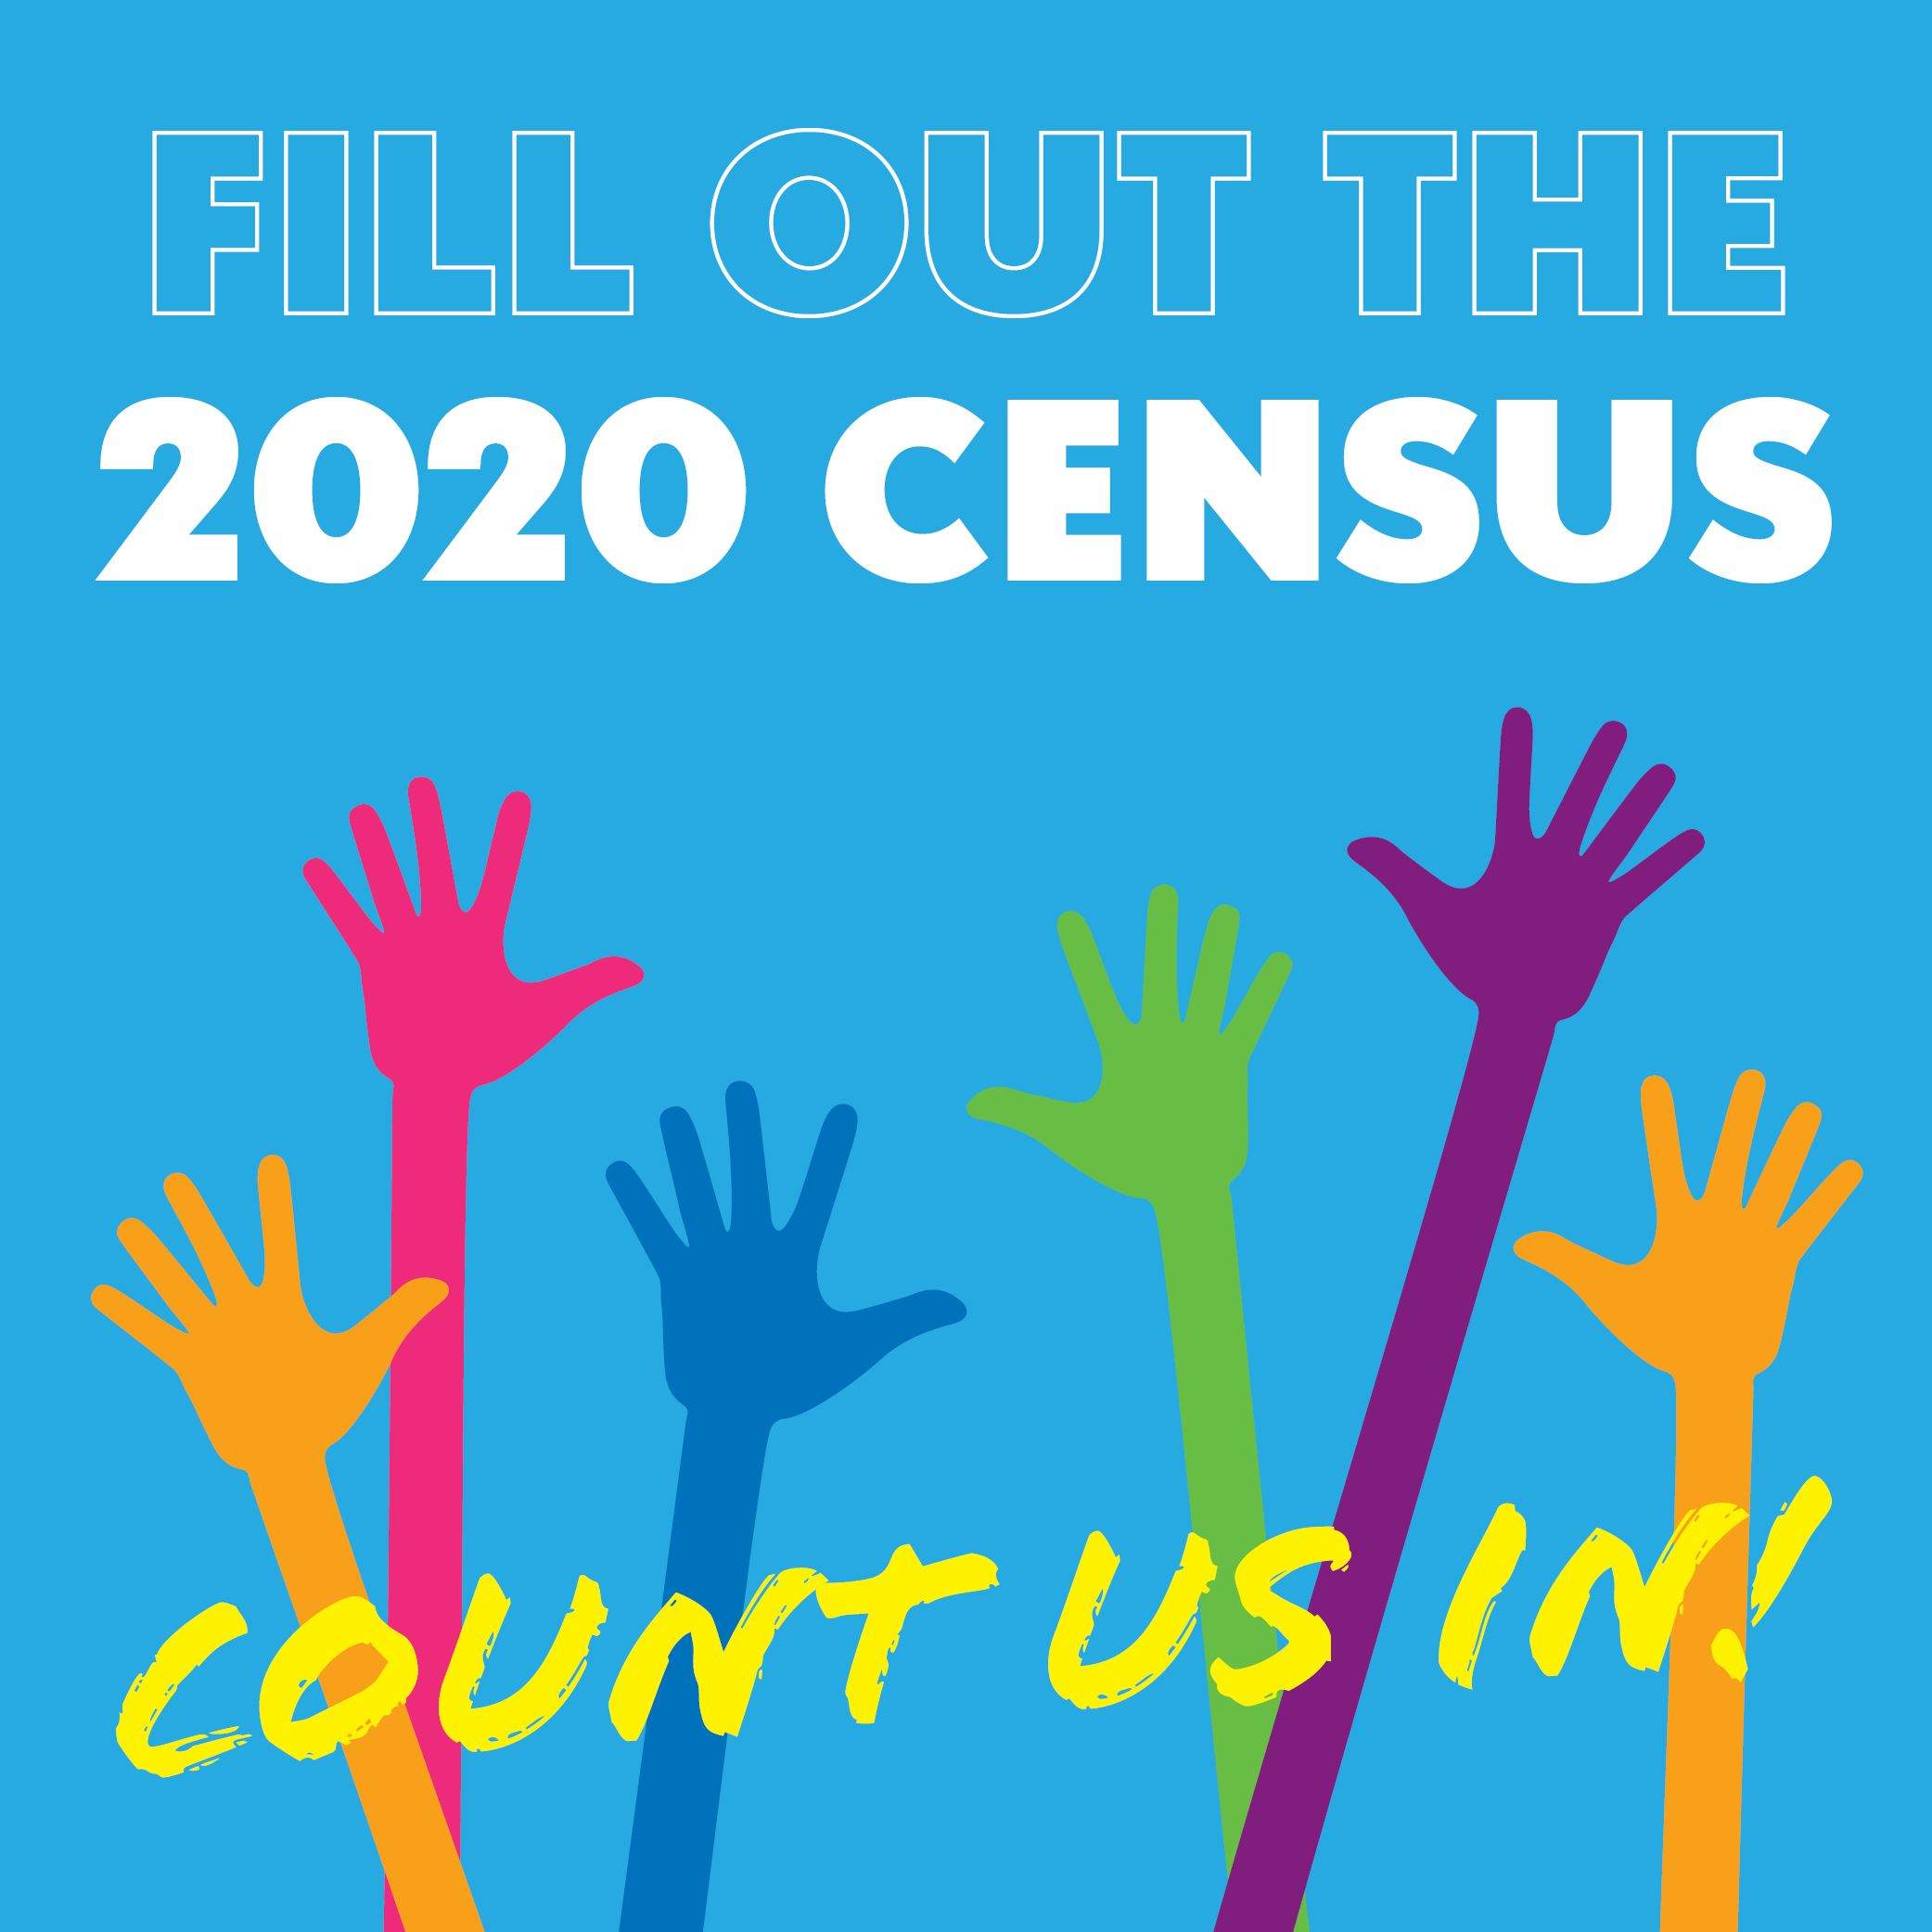 2020 Census Count Us In